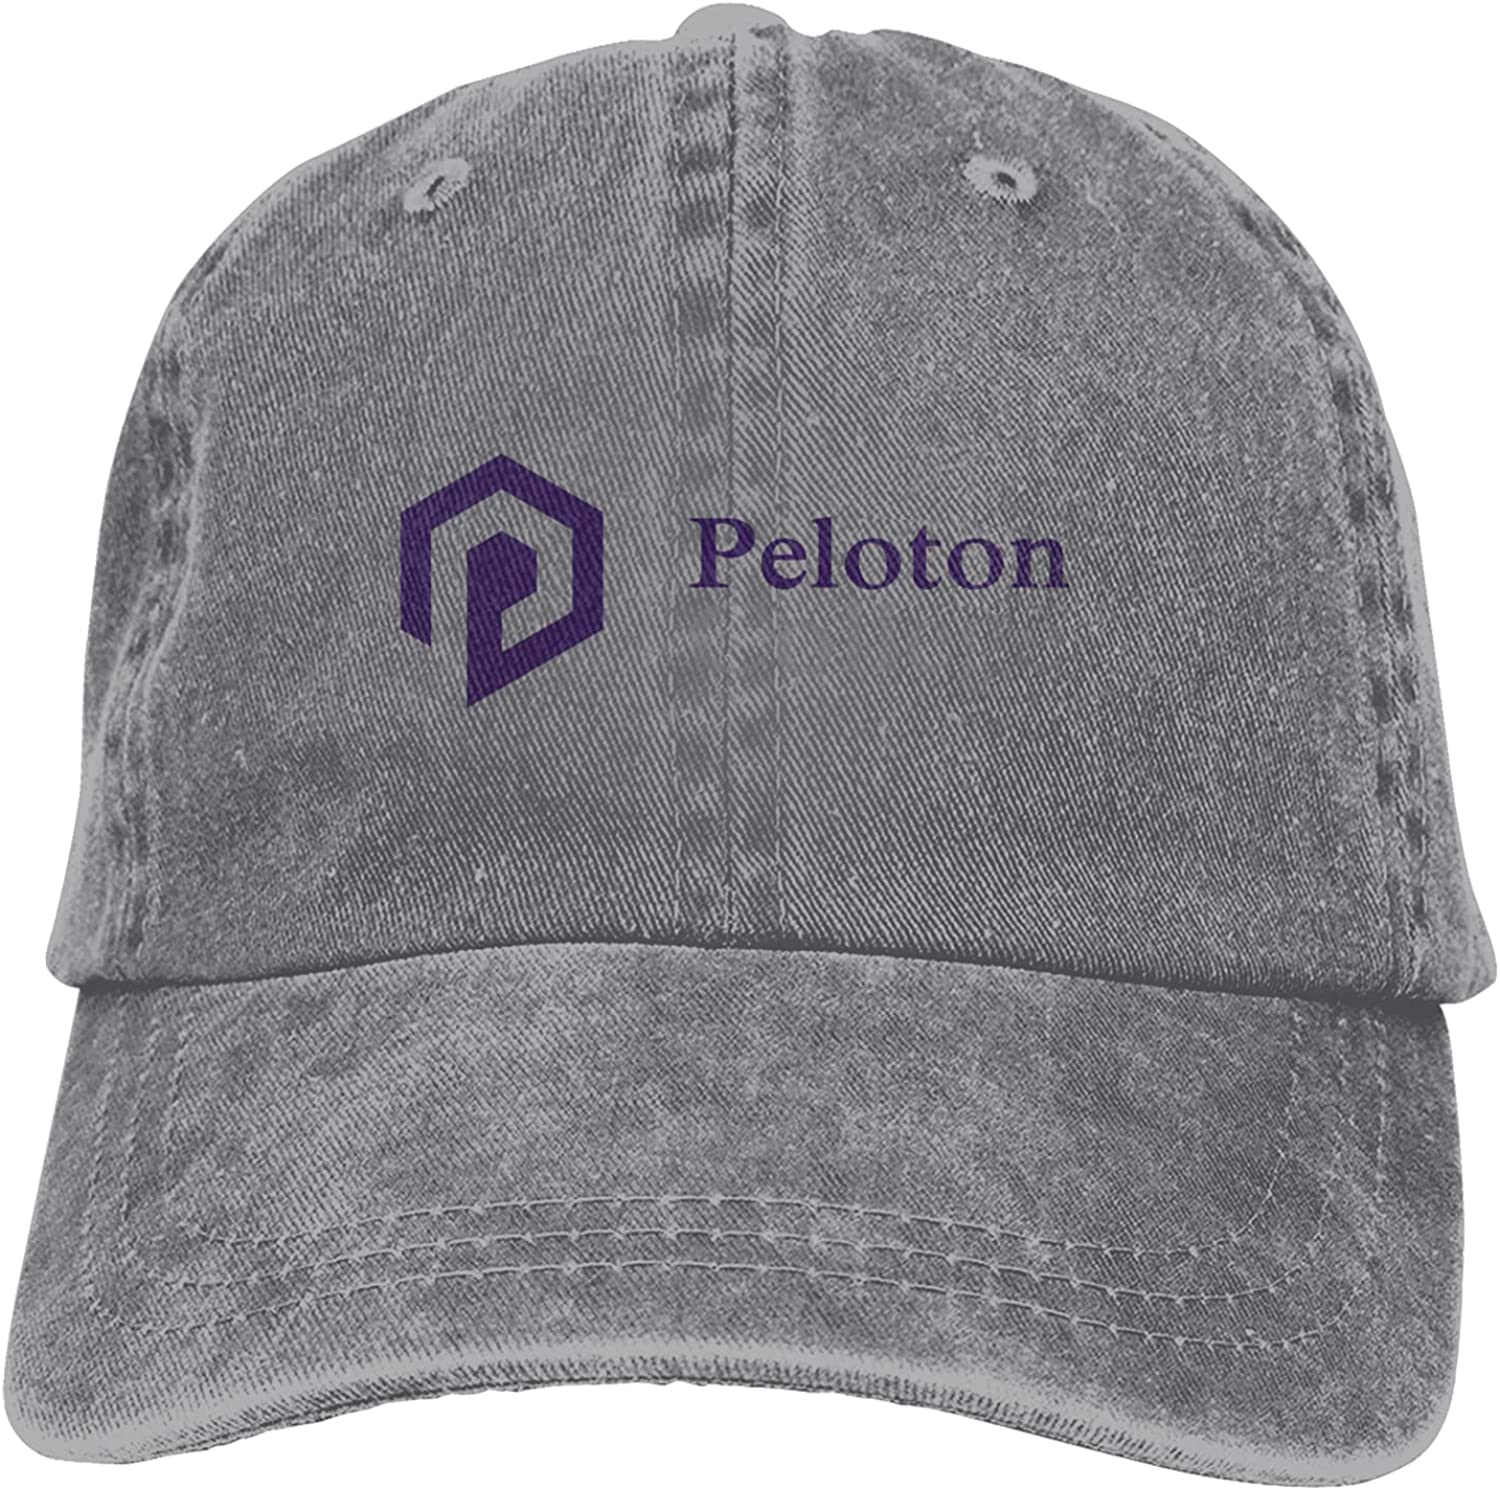 Yund Peloton College 2021new shipping free Cap Adjustab Students. for Suitable 2021 new